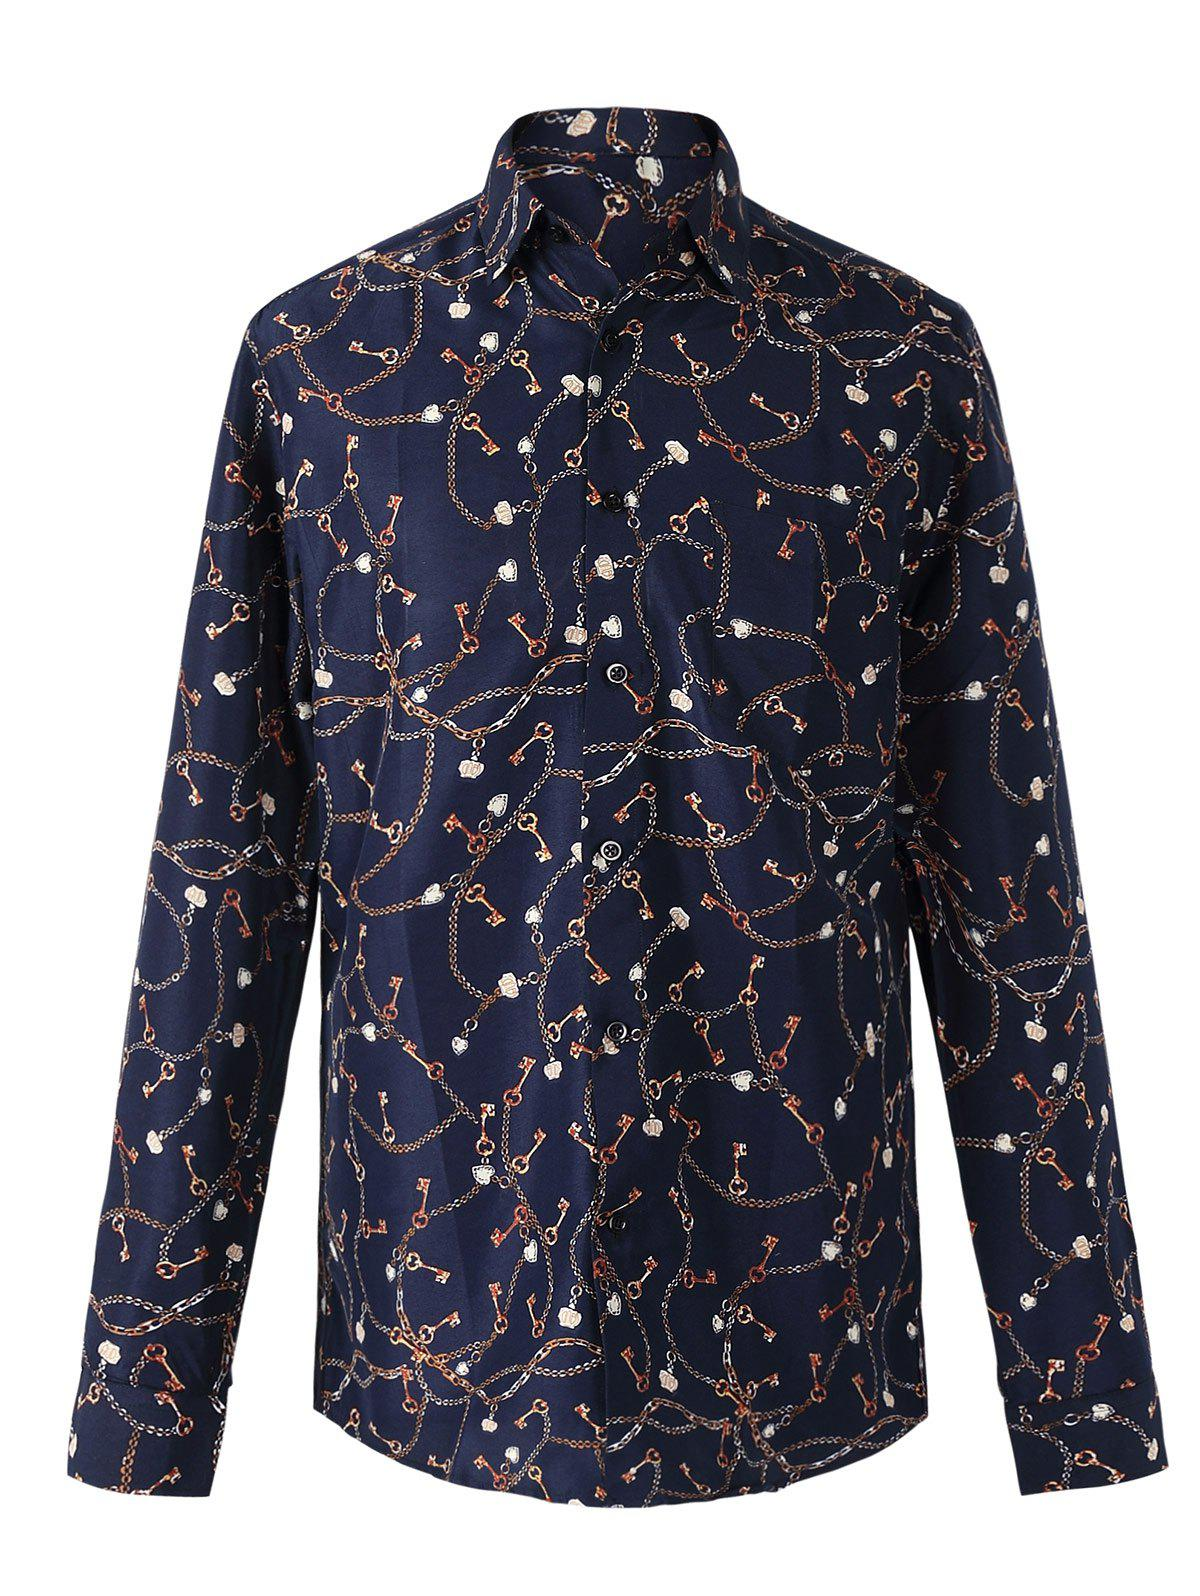 Fashion Chains Print Turn-Down Collar Long Sleeve Shirt For Men - COLORMIX 2XL